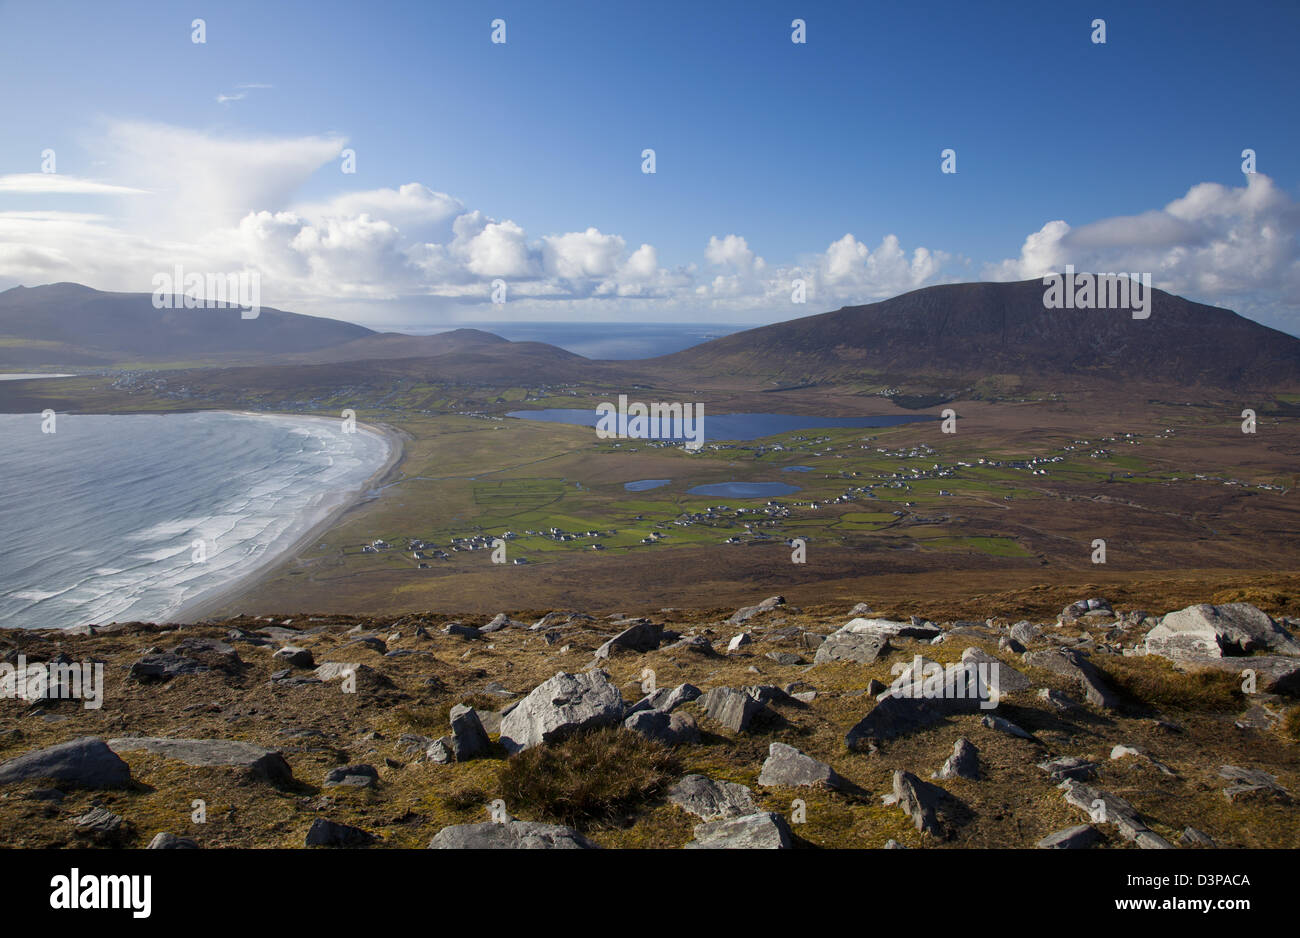 View across Achill Island towards Slievemore, from the Menawn Cliffs, County Mayo, Ireland. - Stock Image